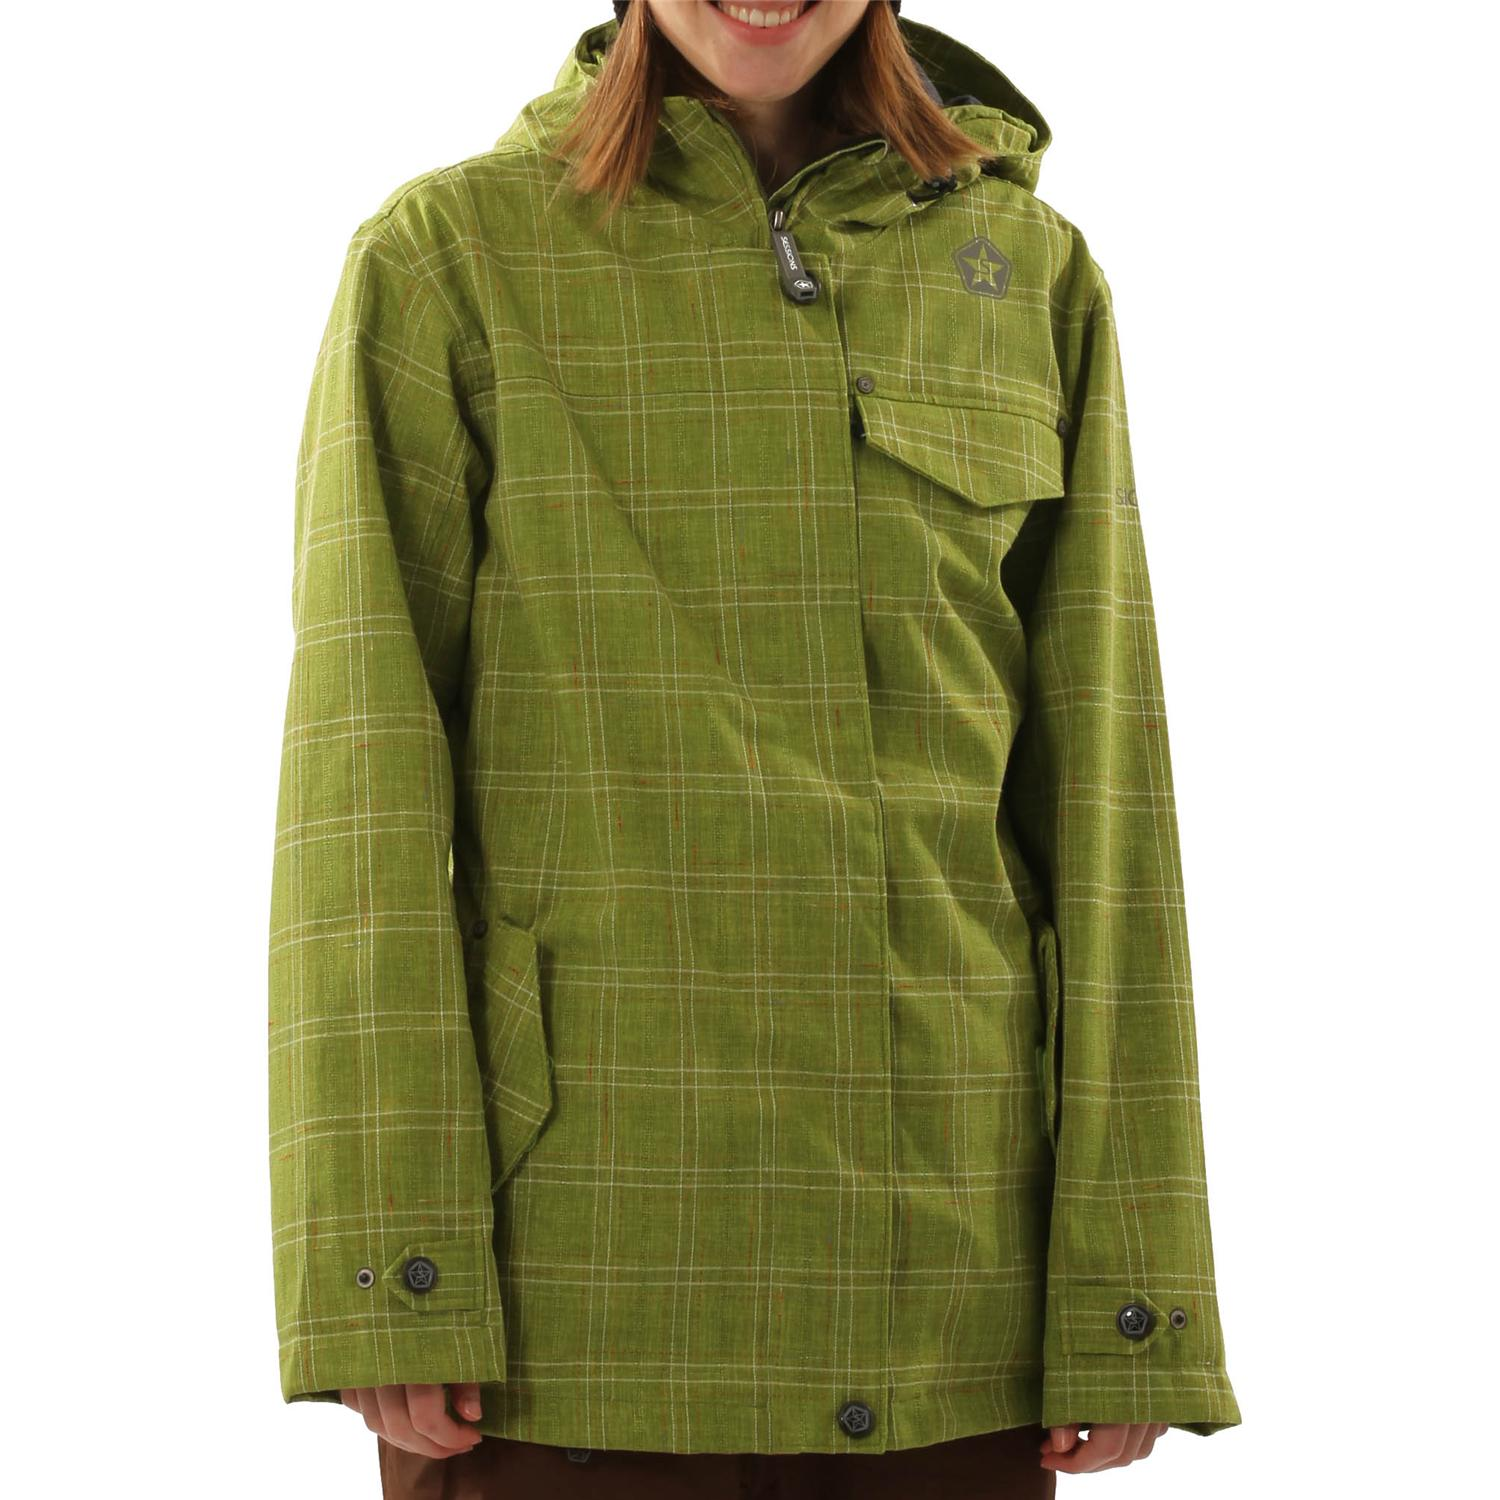 Plaid jacket for women